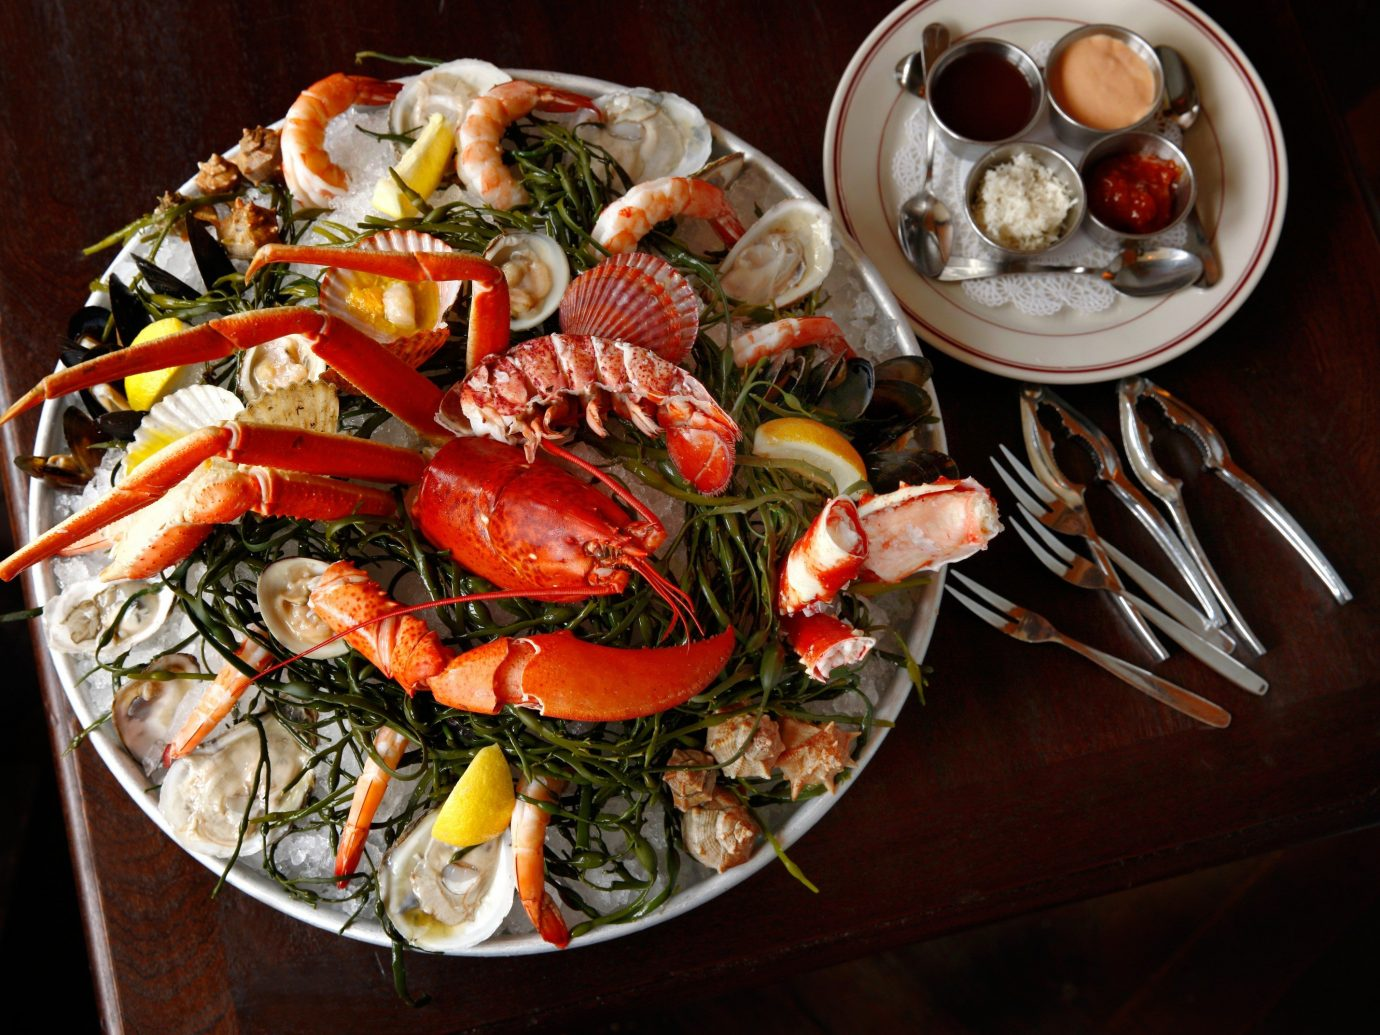 Food + Drink food dish Seafood meal cuisine invertebrate fish mussel animal source foods seafood boil